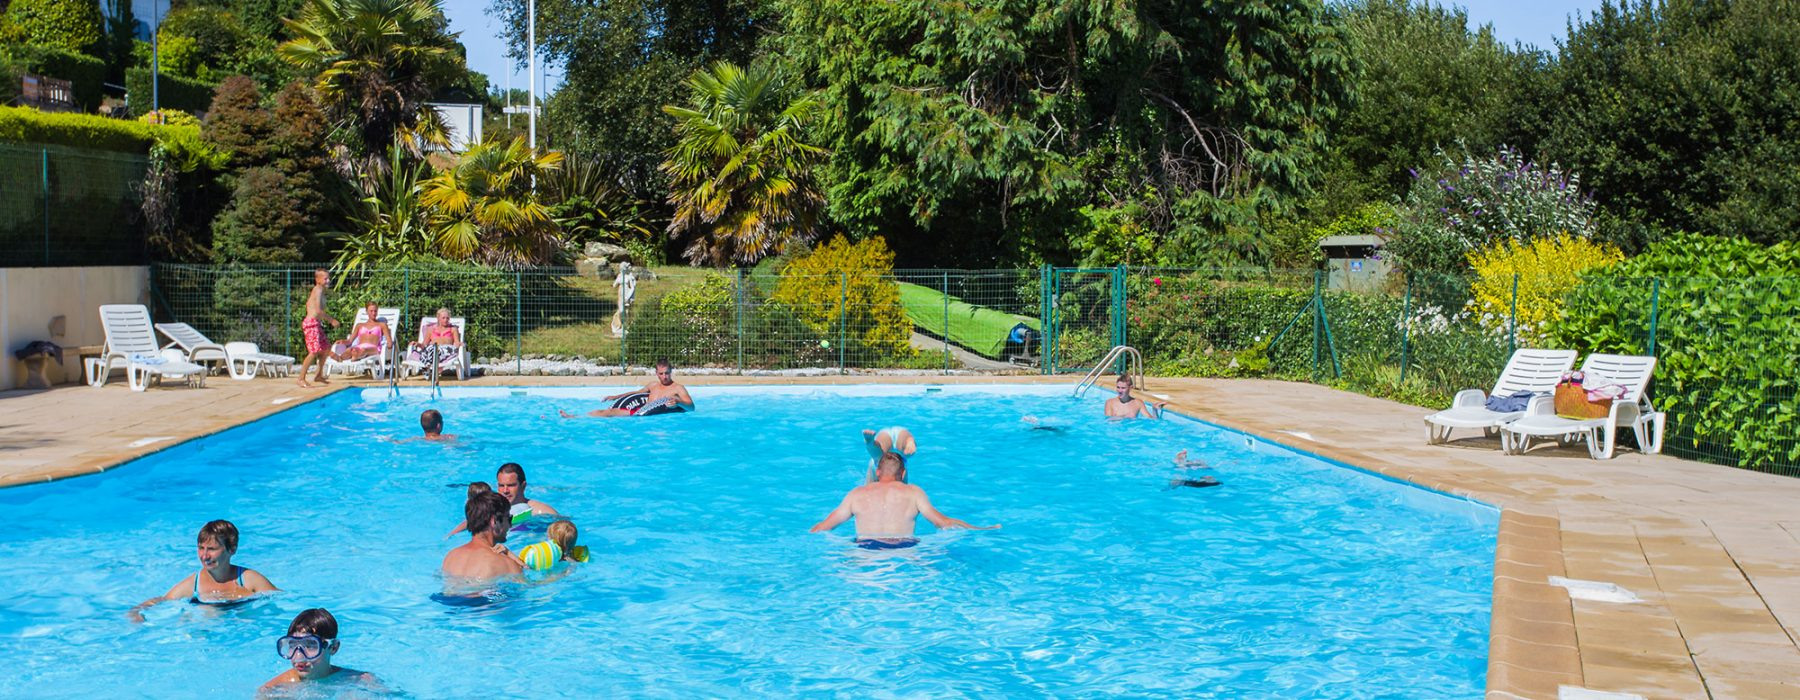 Camping crozon avec piscine chauff e camping 4 toiles for Camping dans le cantal avec piscine